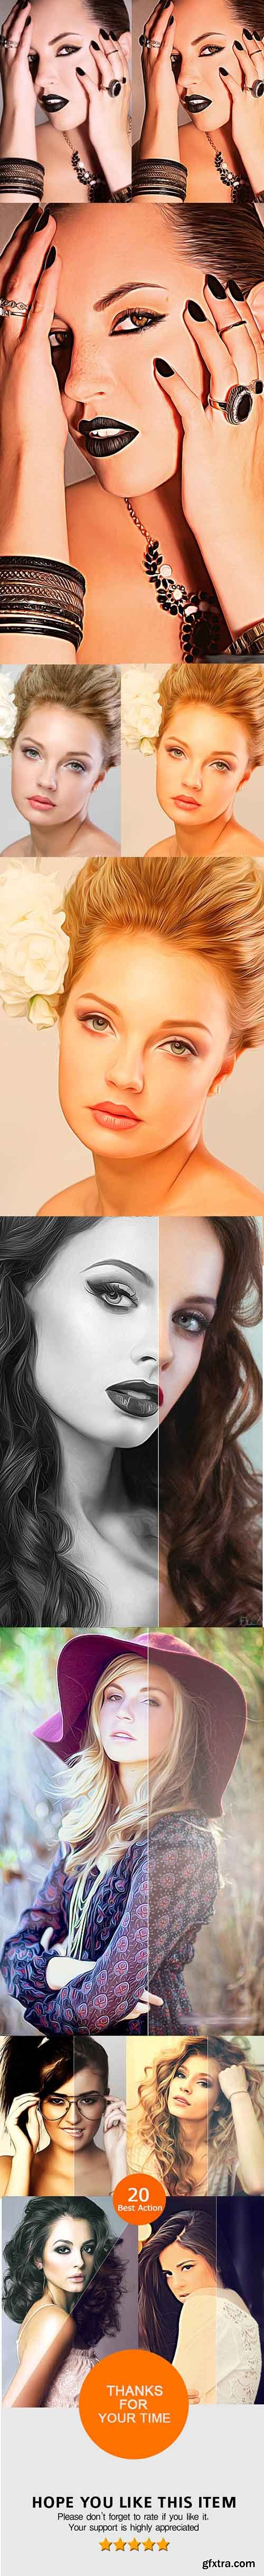 GraphicRiver Realistic Oil Painting Effects - Photoshop Action 10692055